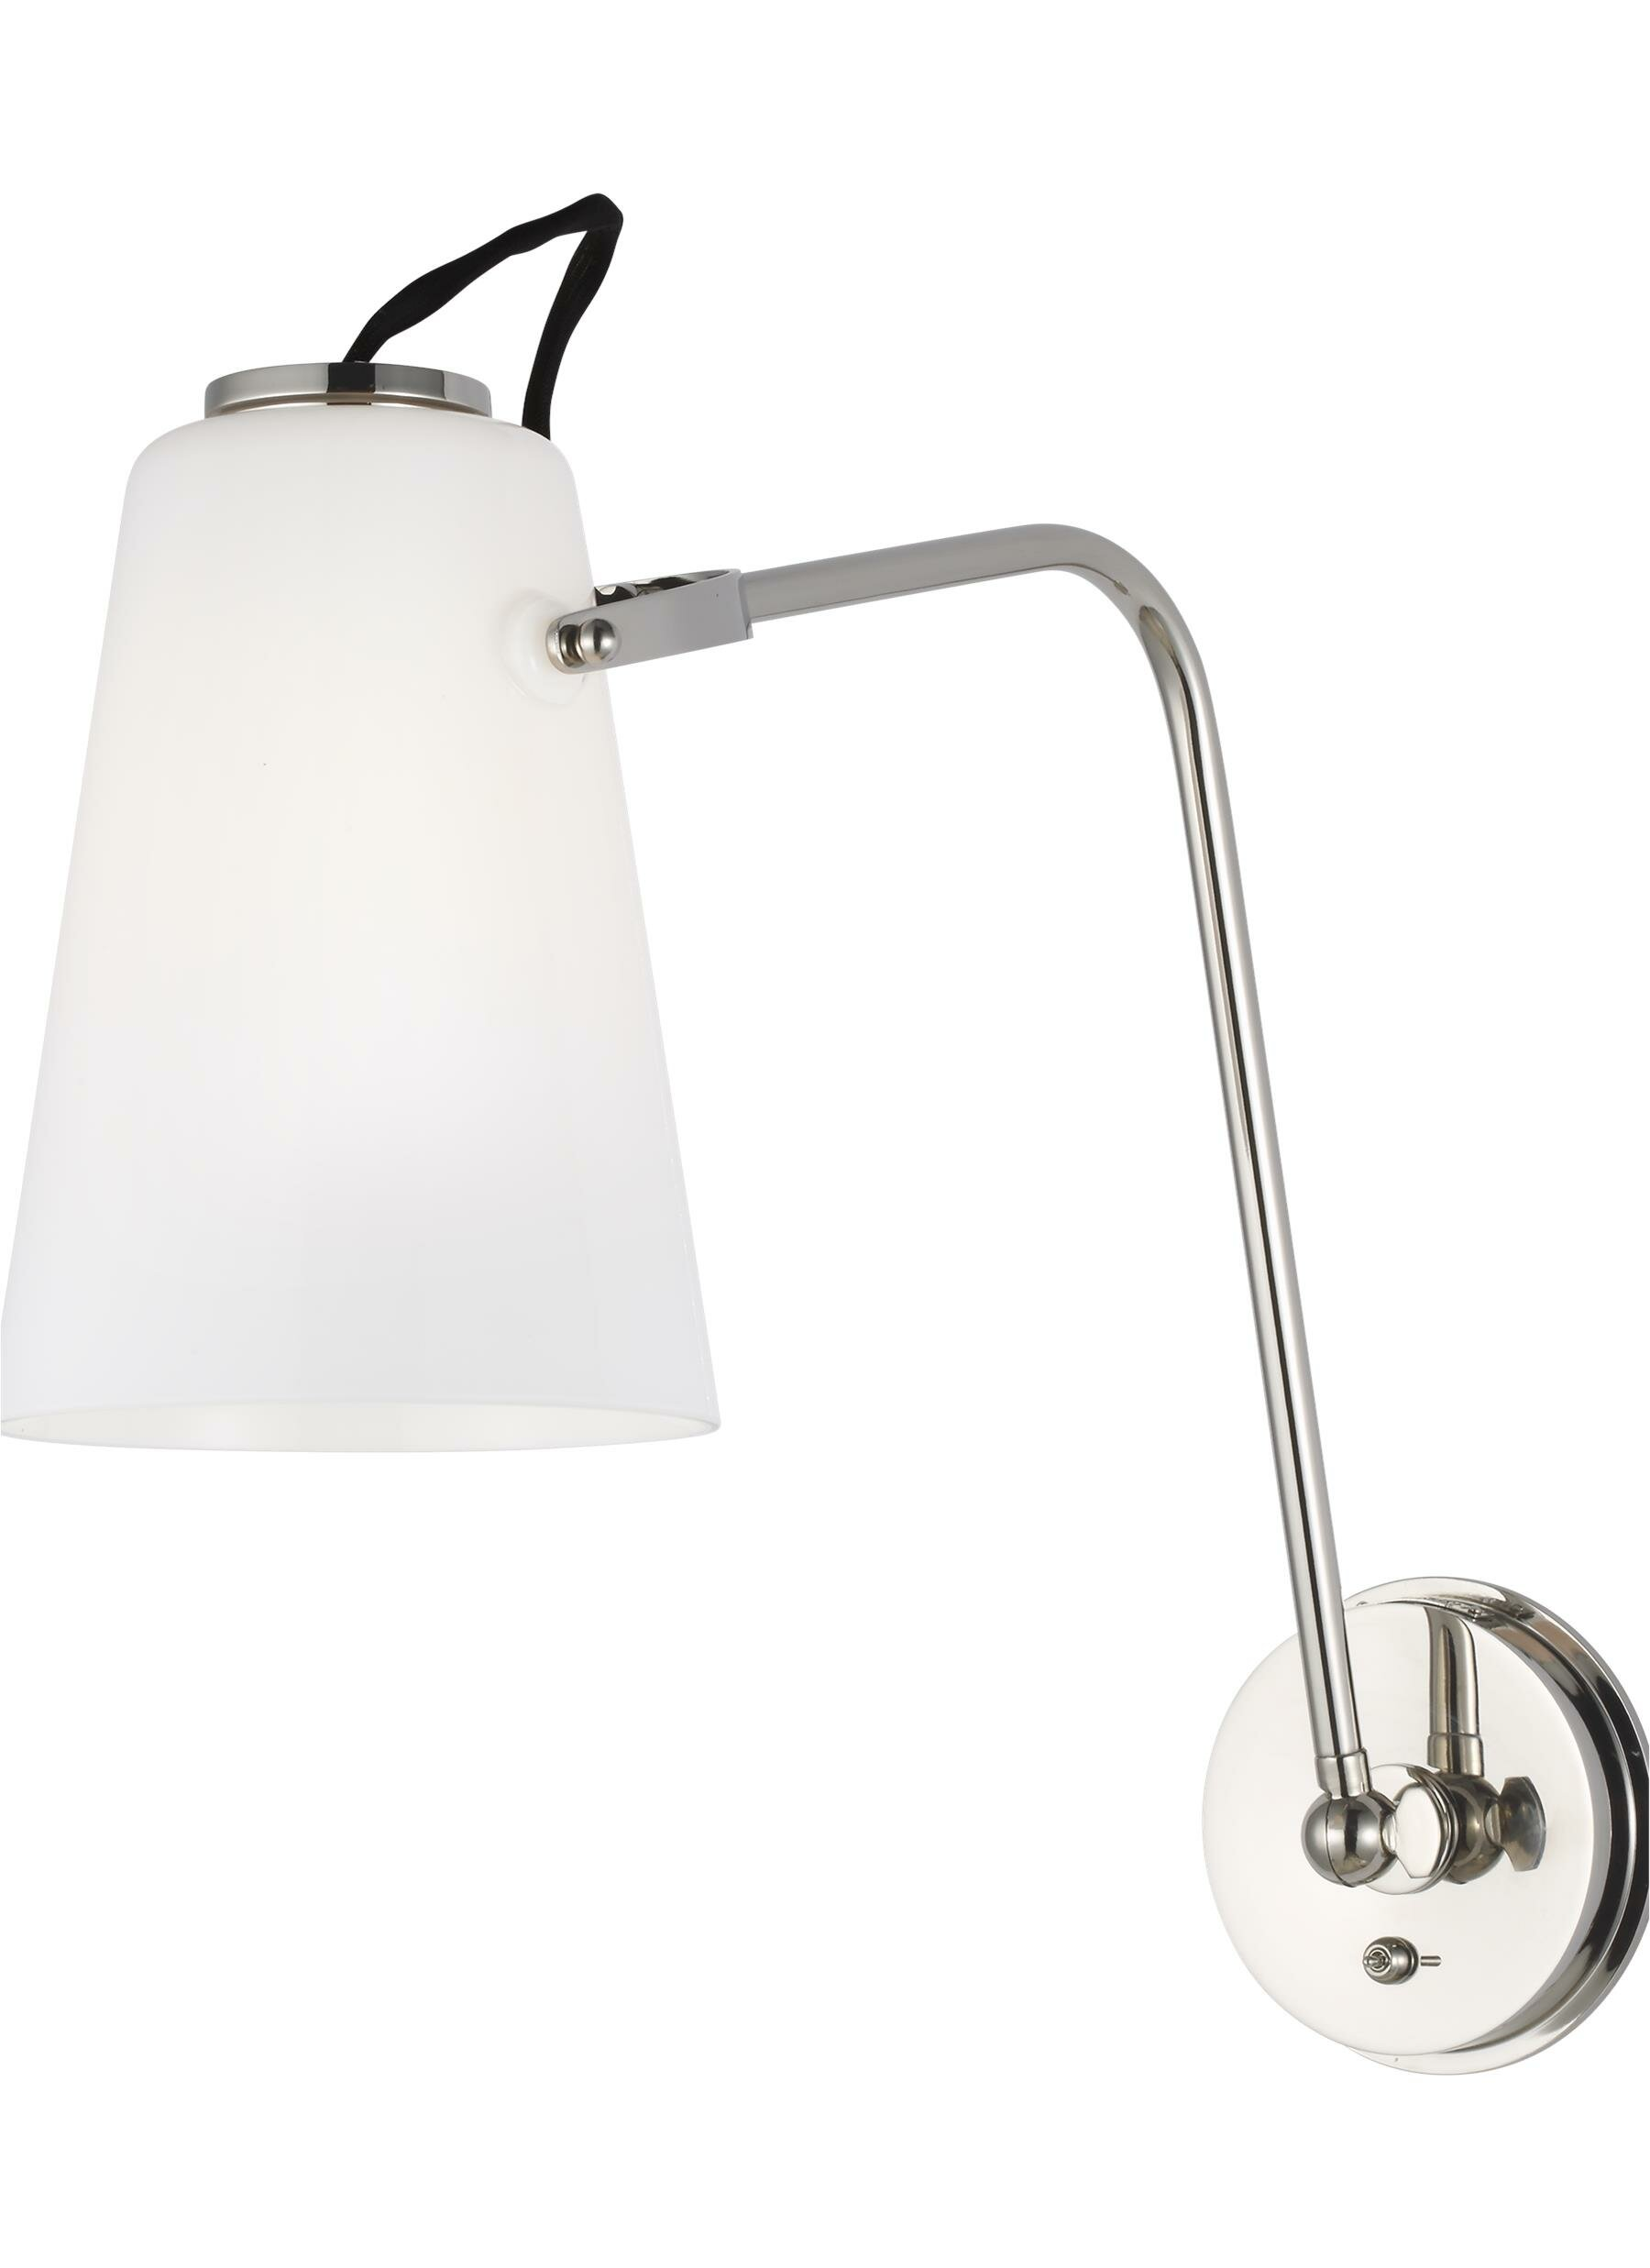 Lauren Ralph Lauren Hazel 1 Light Dimmable Swing Arm Wayfair